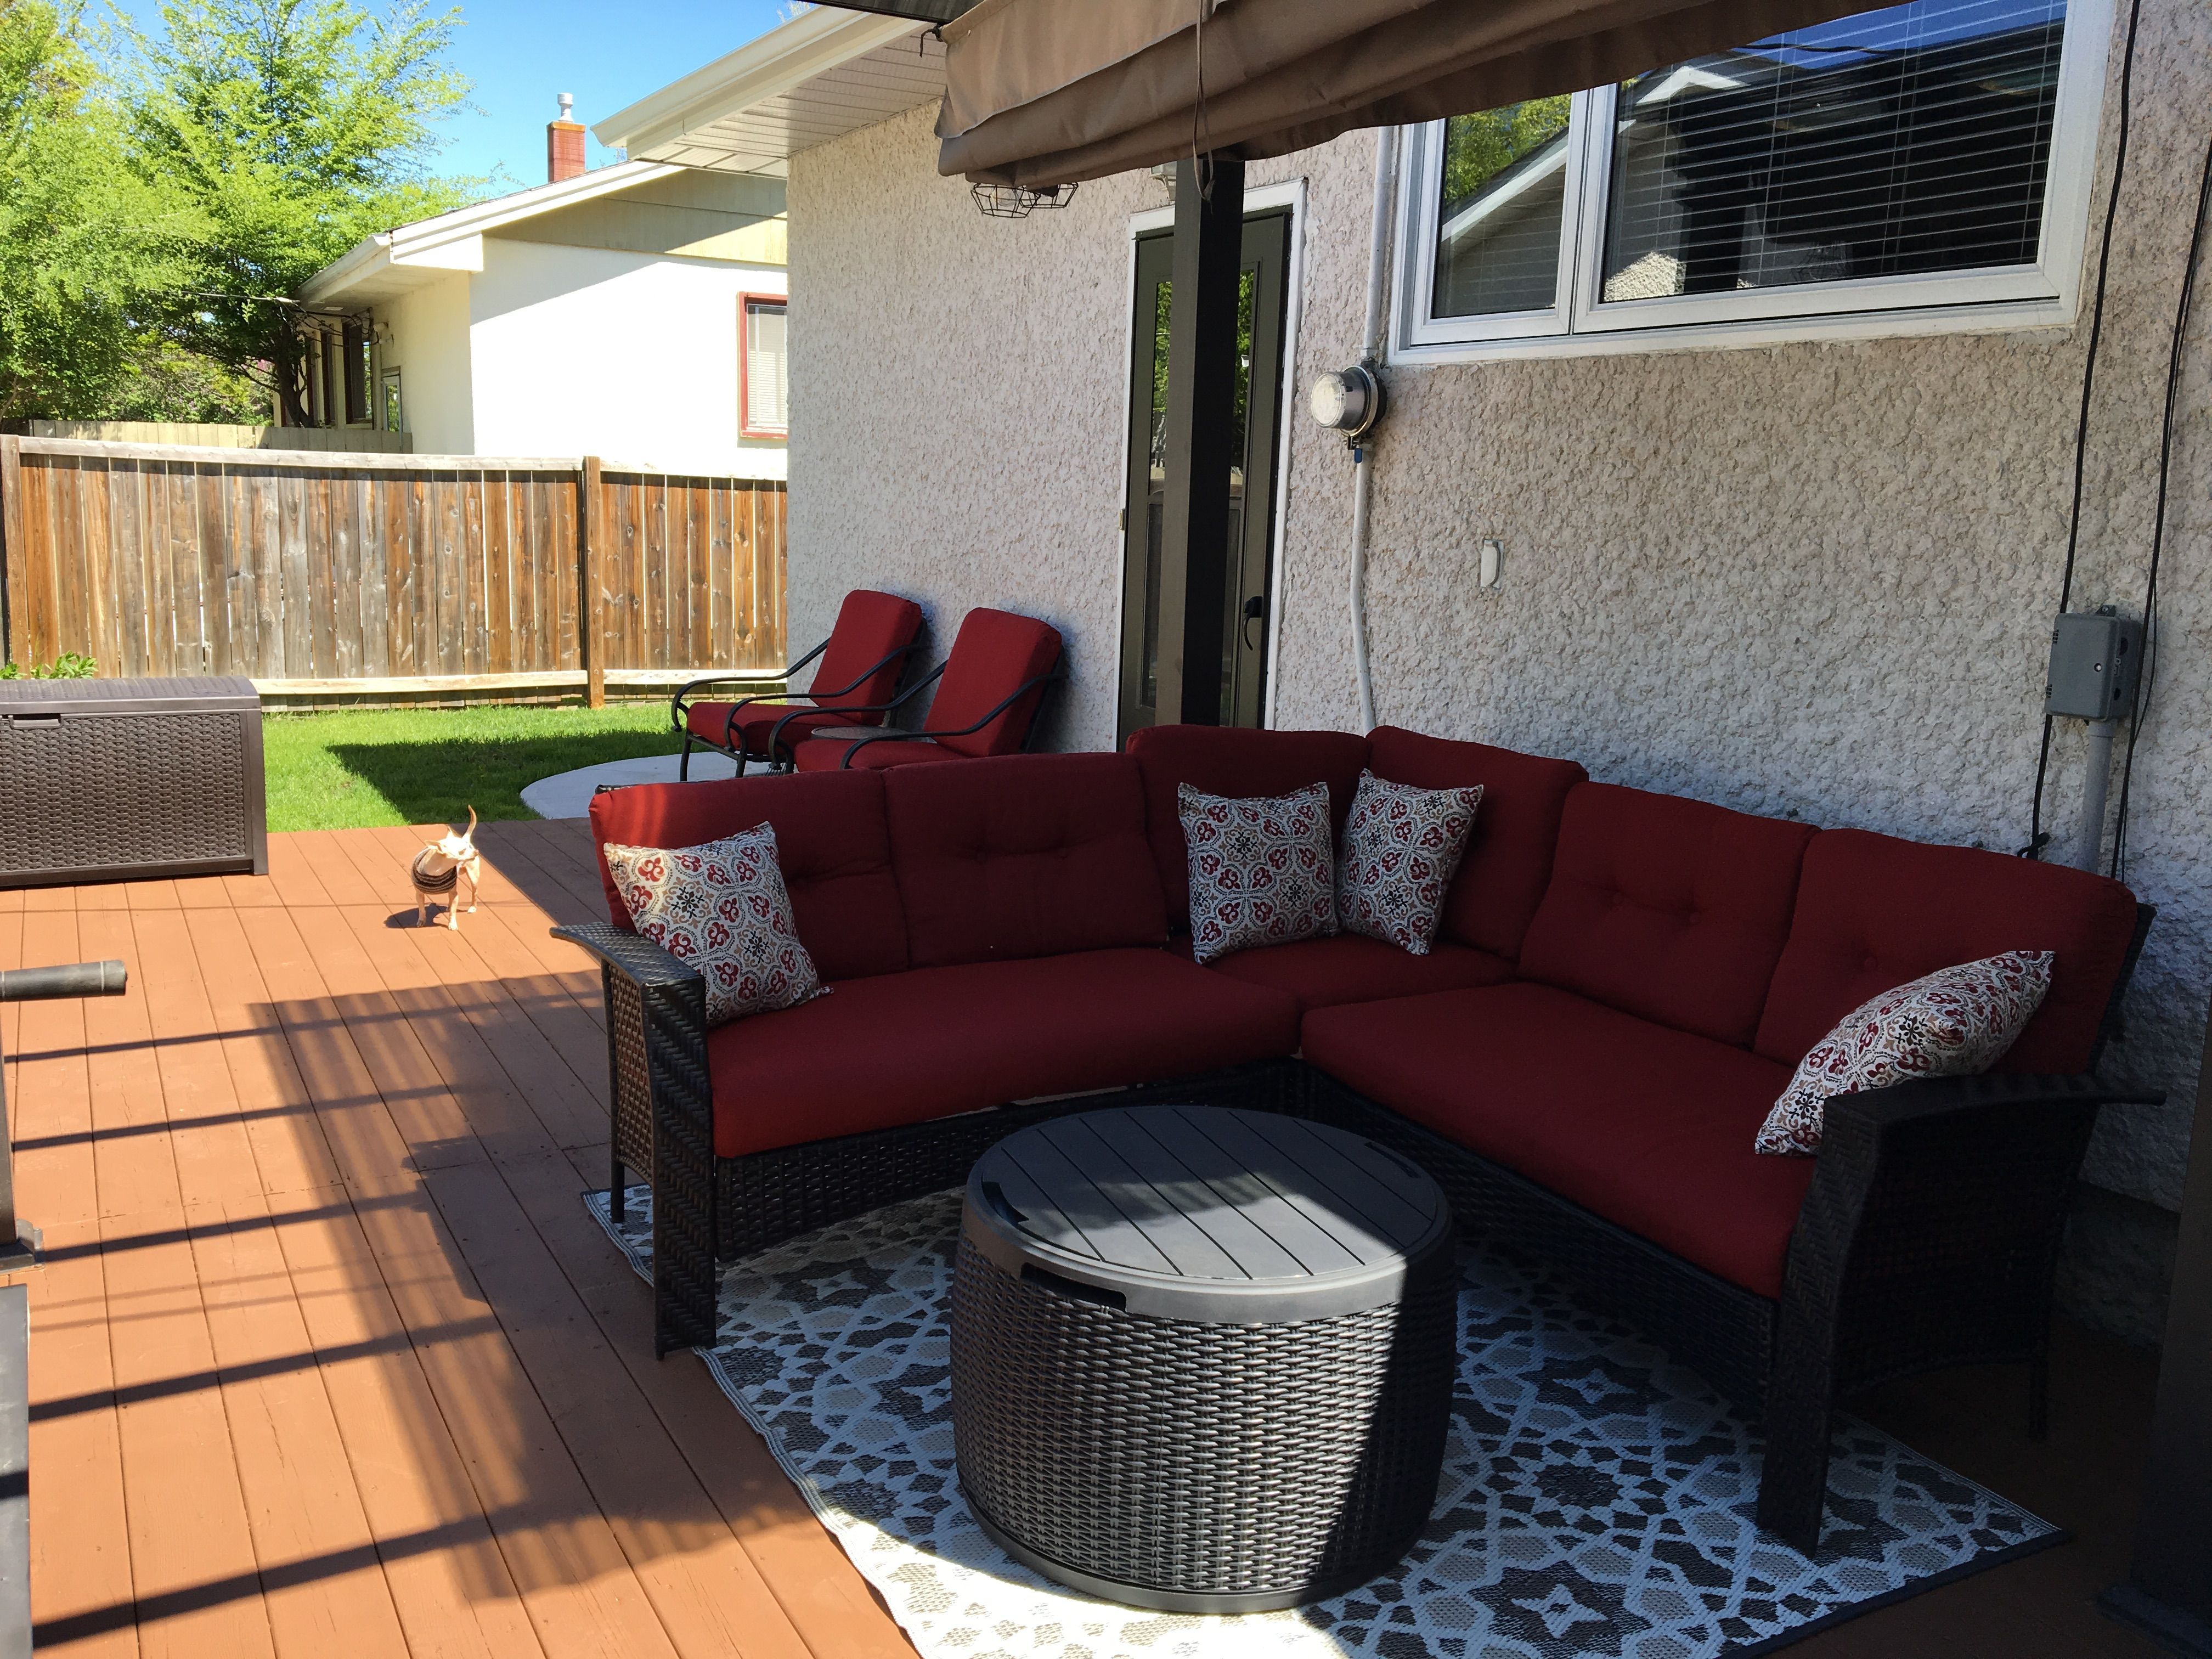 Outdoor living space furniture from Walmart | Outdoor ... on Walmart Outdoor Living  id=52272